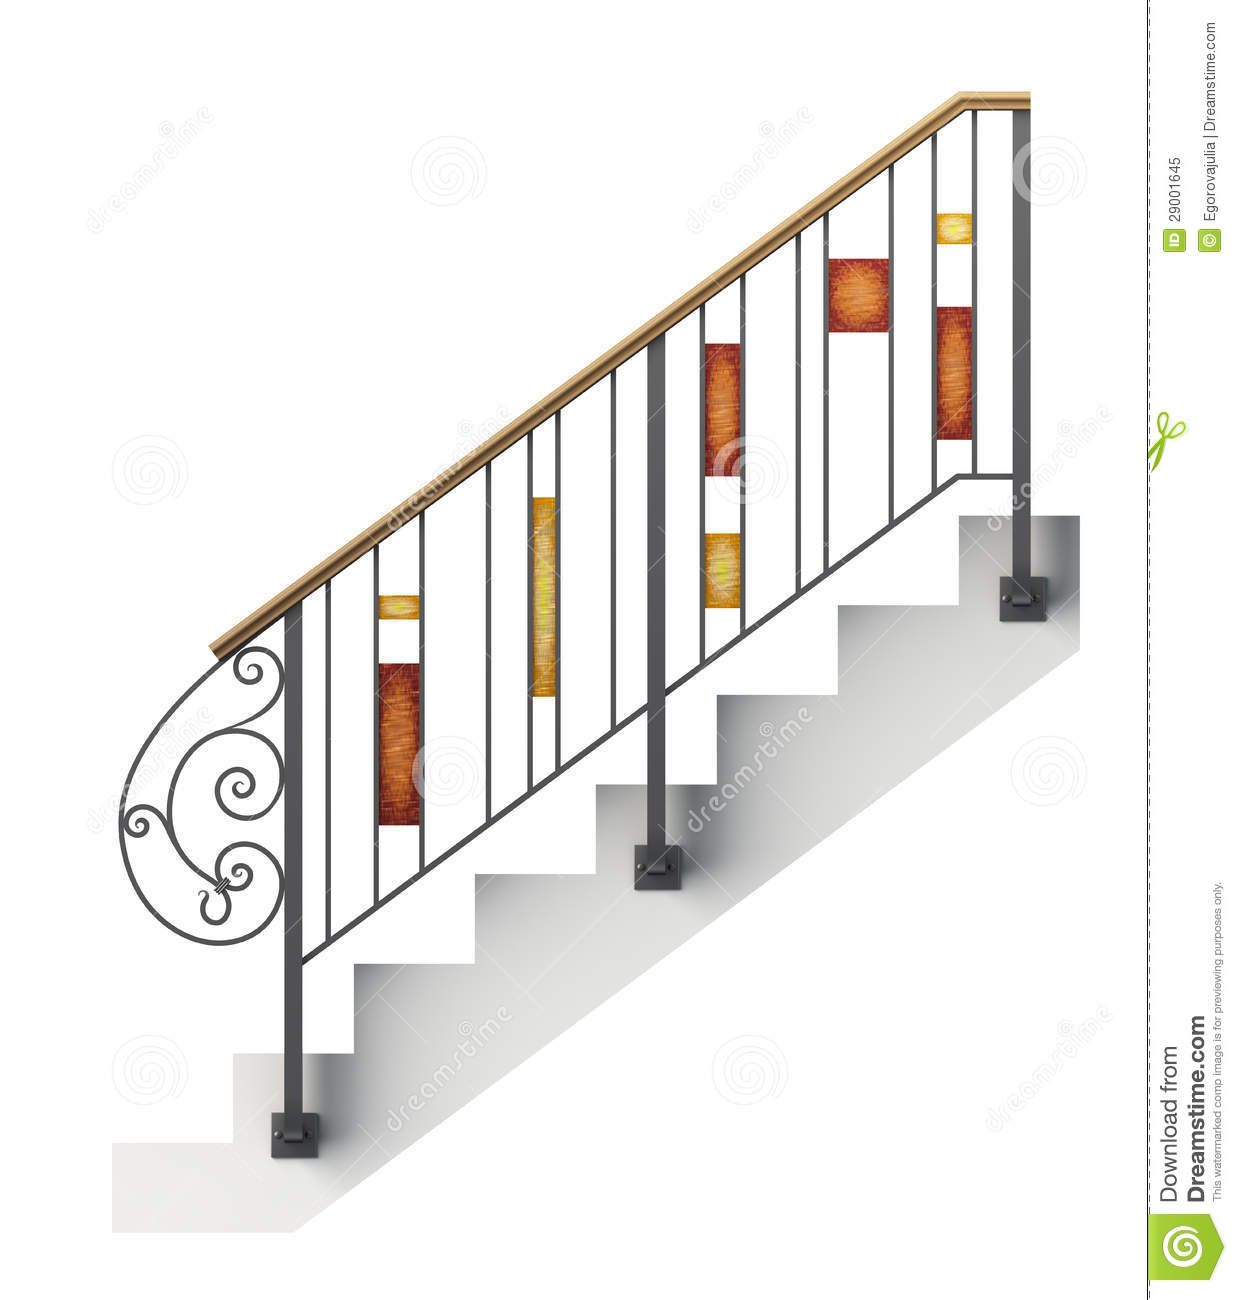 Wrought Iron Stair Railing. Superb Stair Railing Designs In.